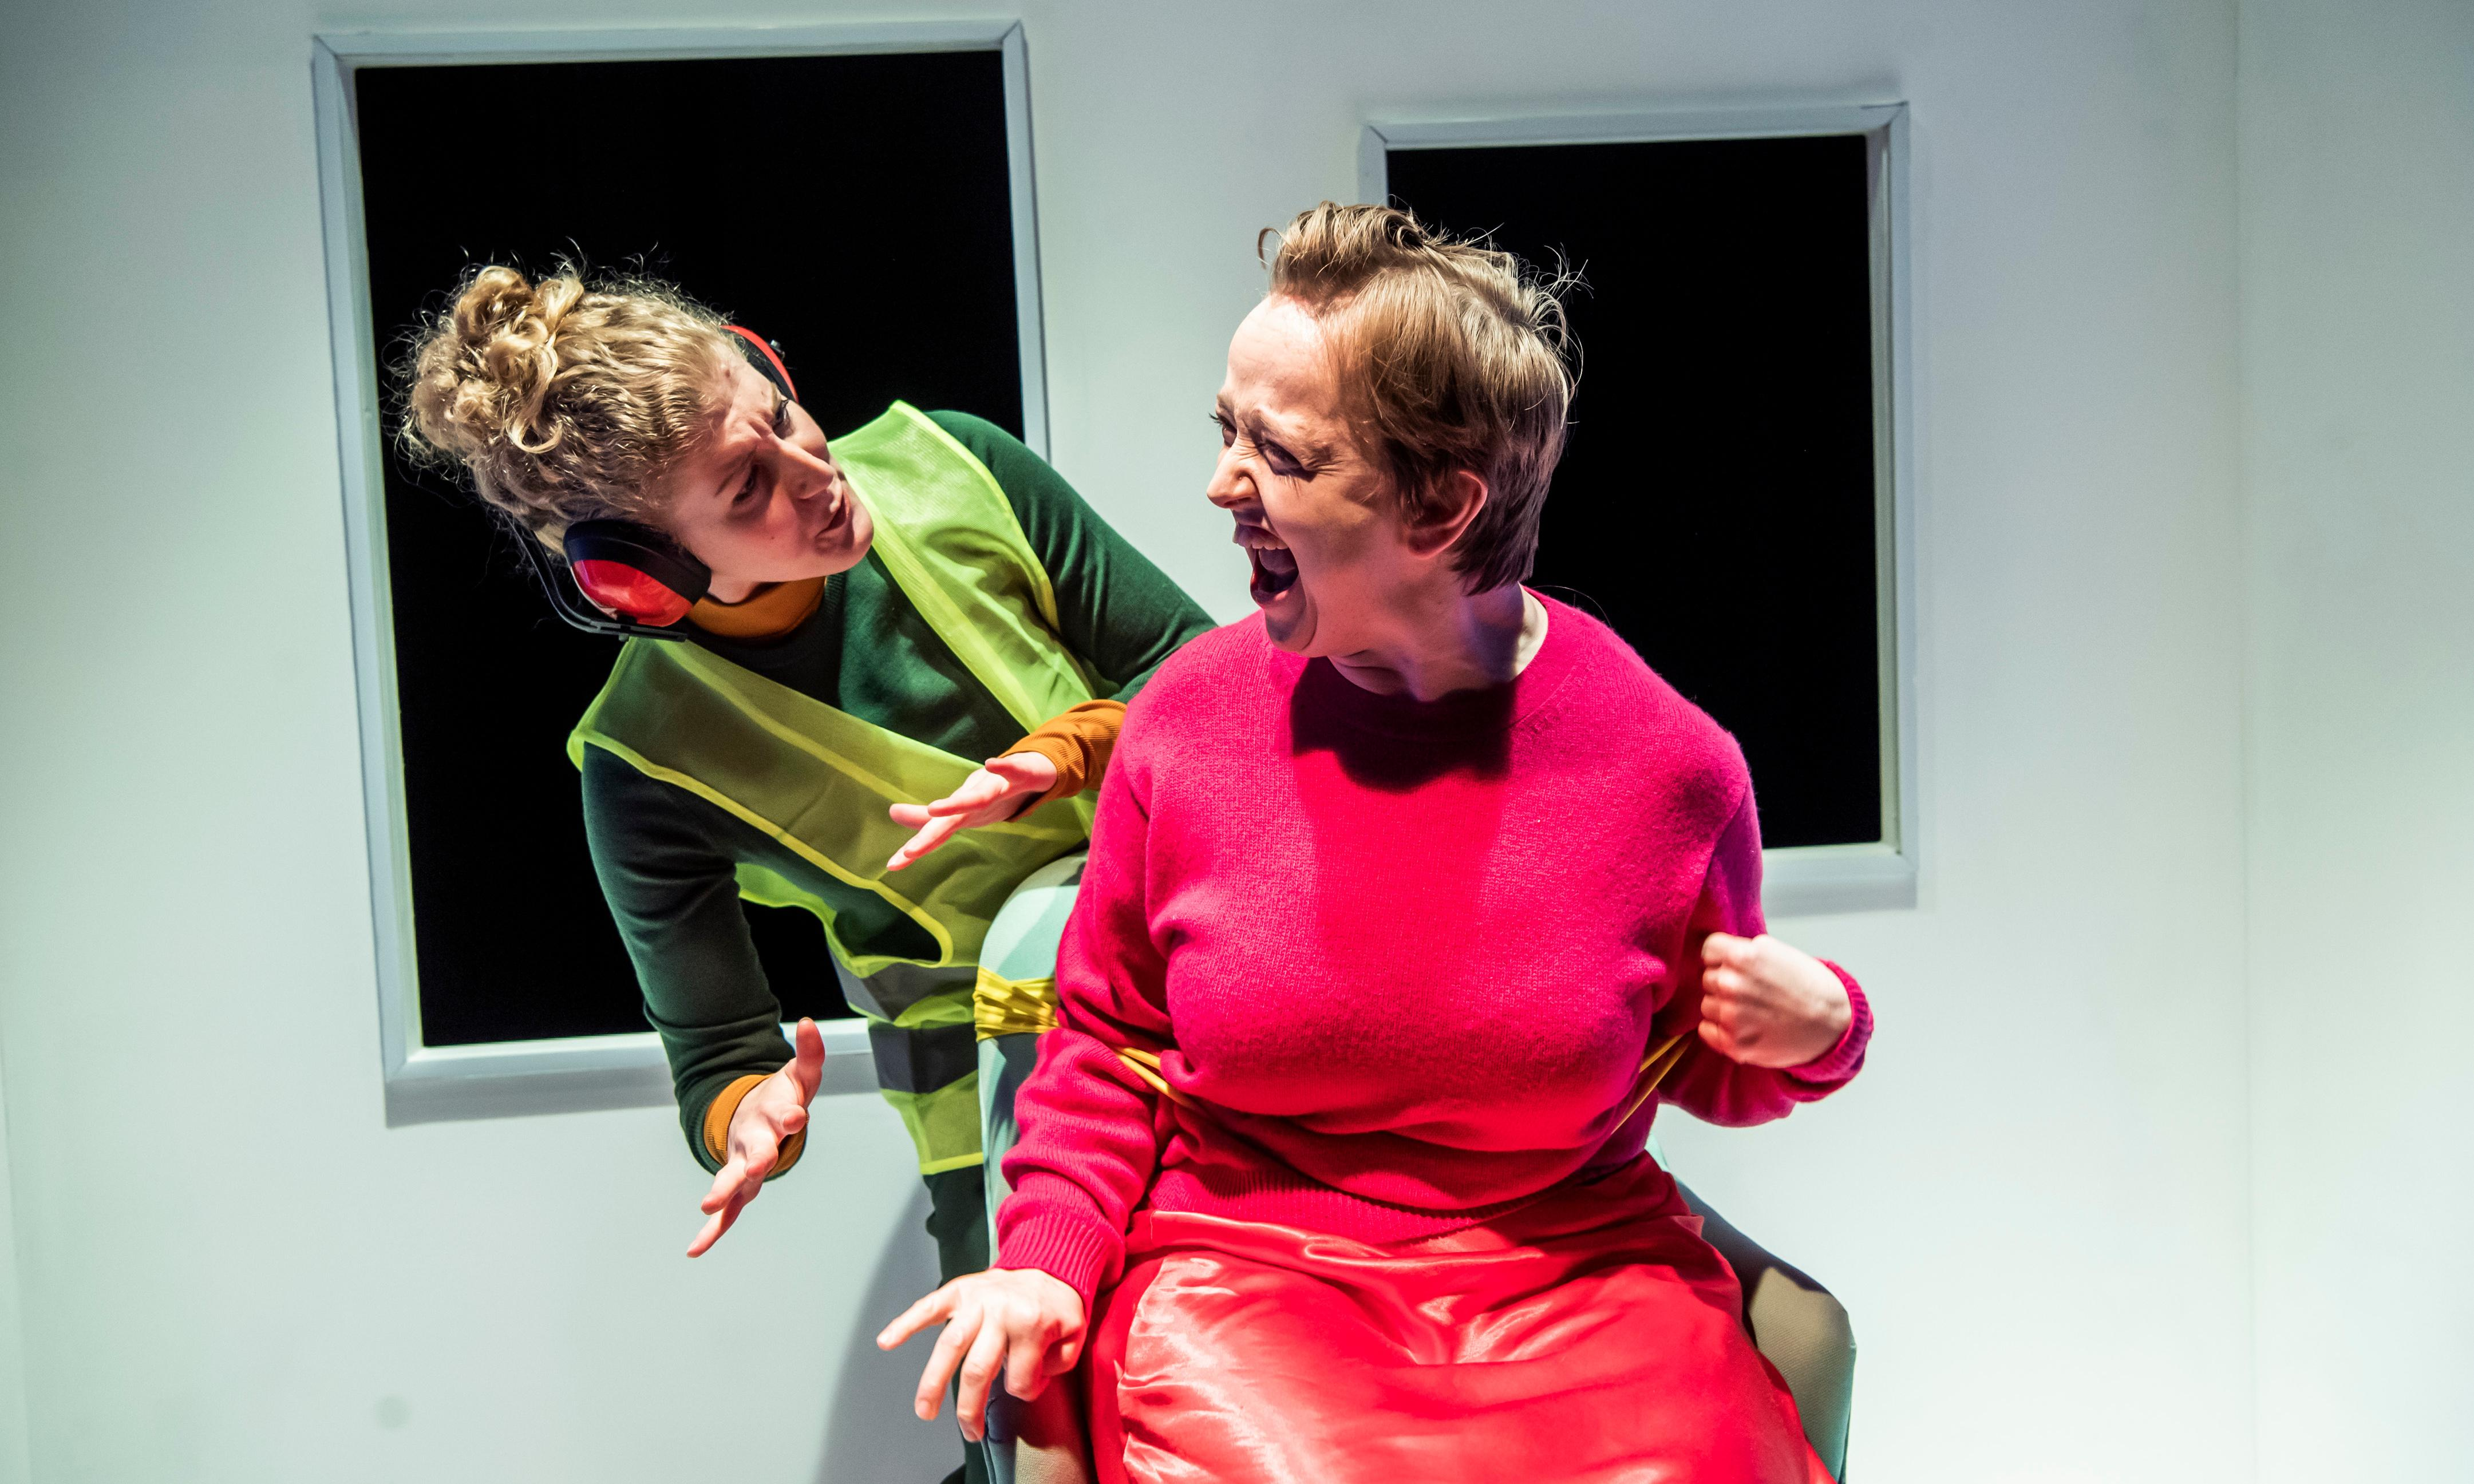 Scrounger review – the surreal case of the broken wheelchair